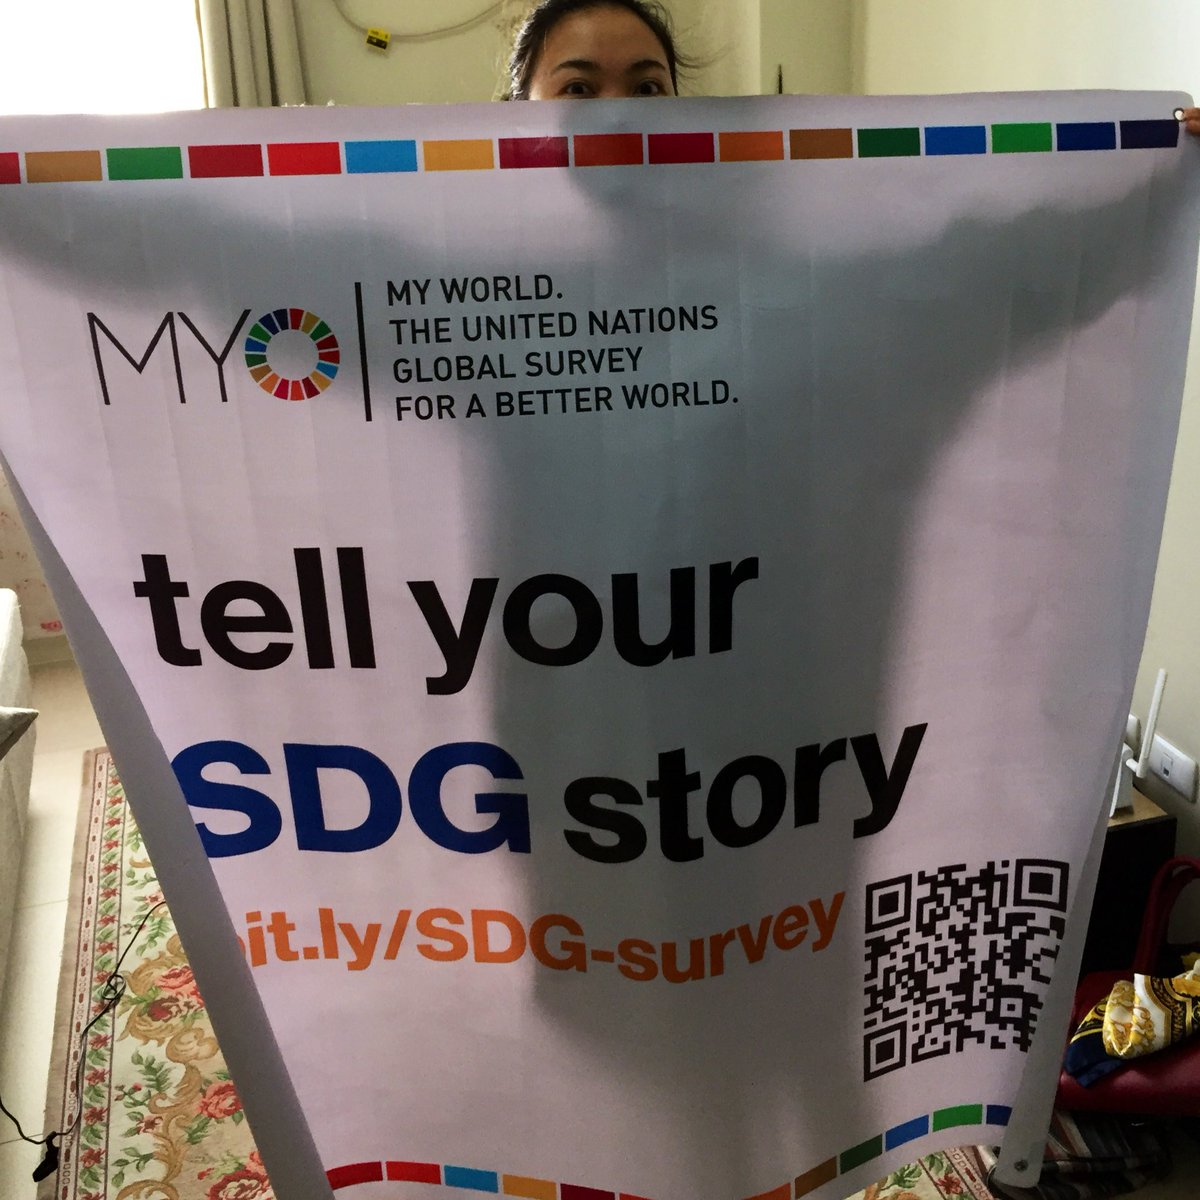 Excited to collect #MyWORLD2030 survey responses on the #SDGs at tomorrow's #IgniteMNL expo! bit.ly/SDG-survey